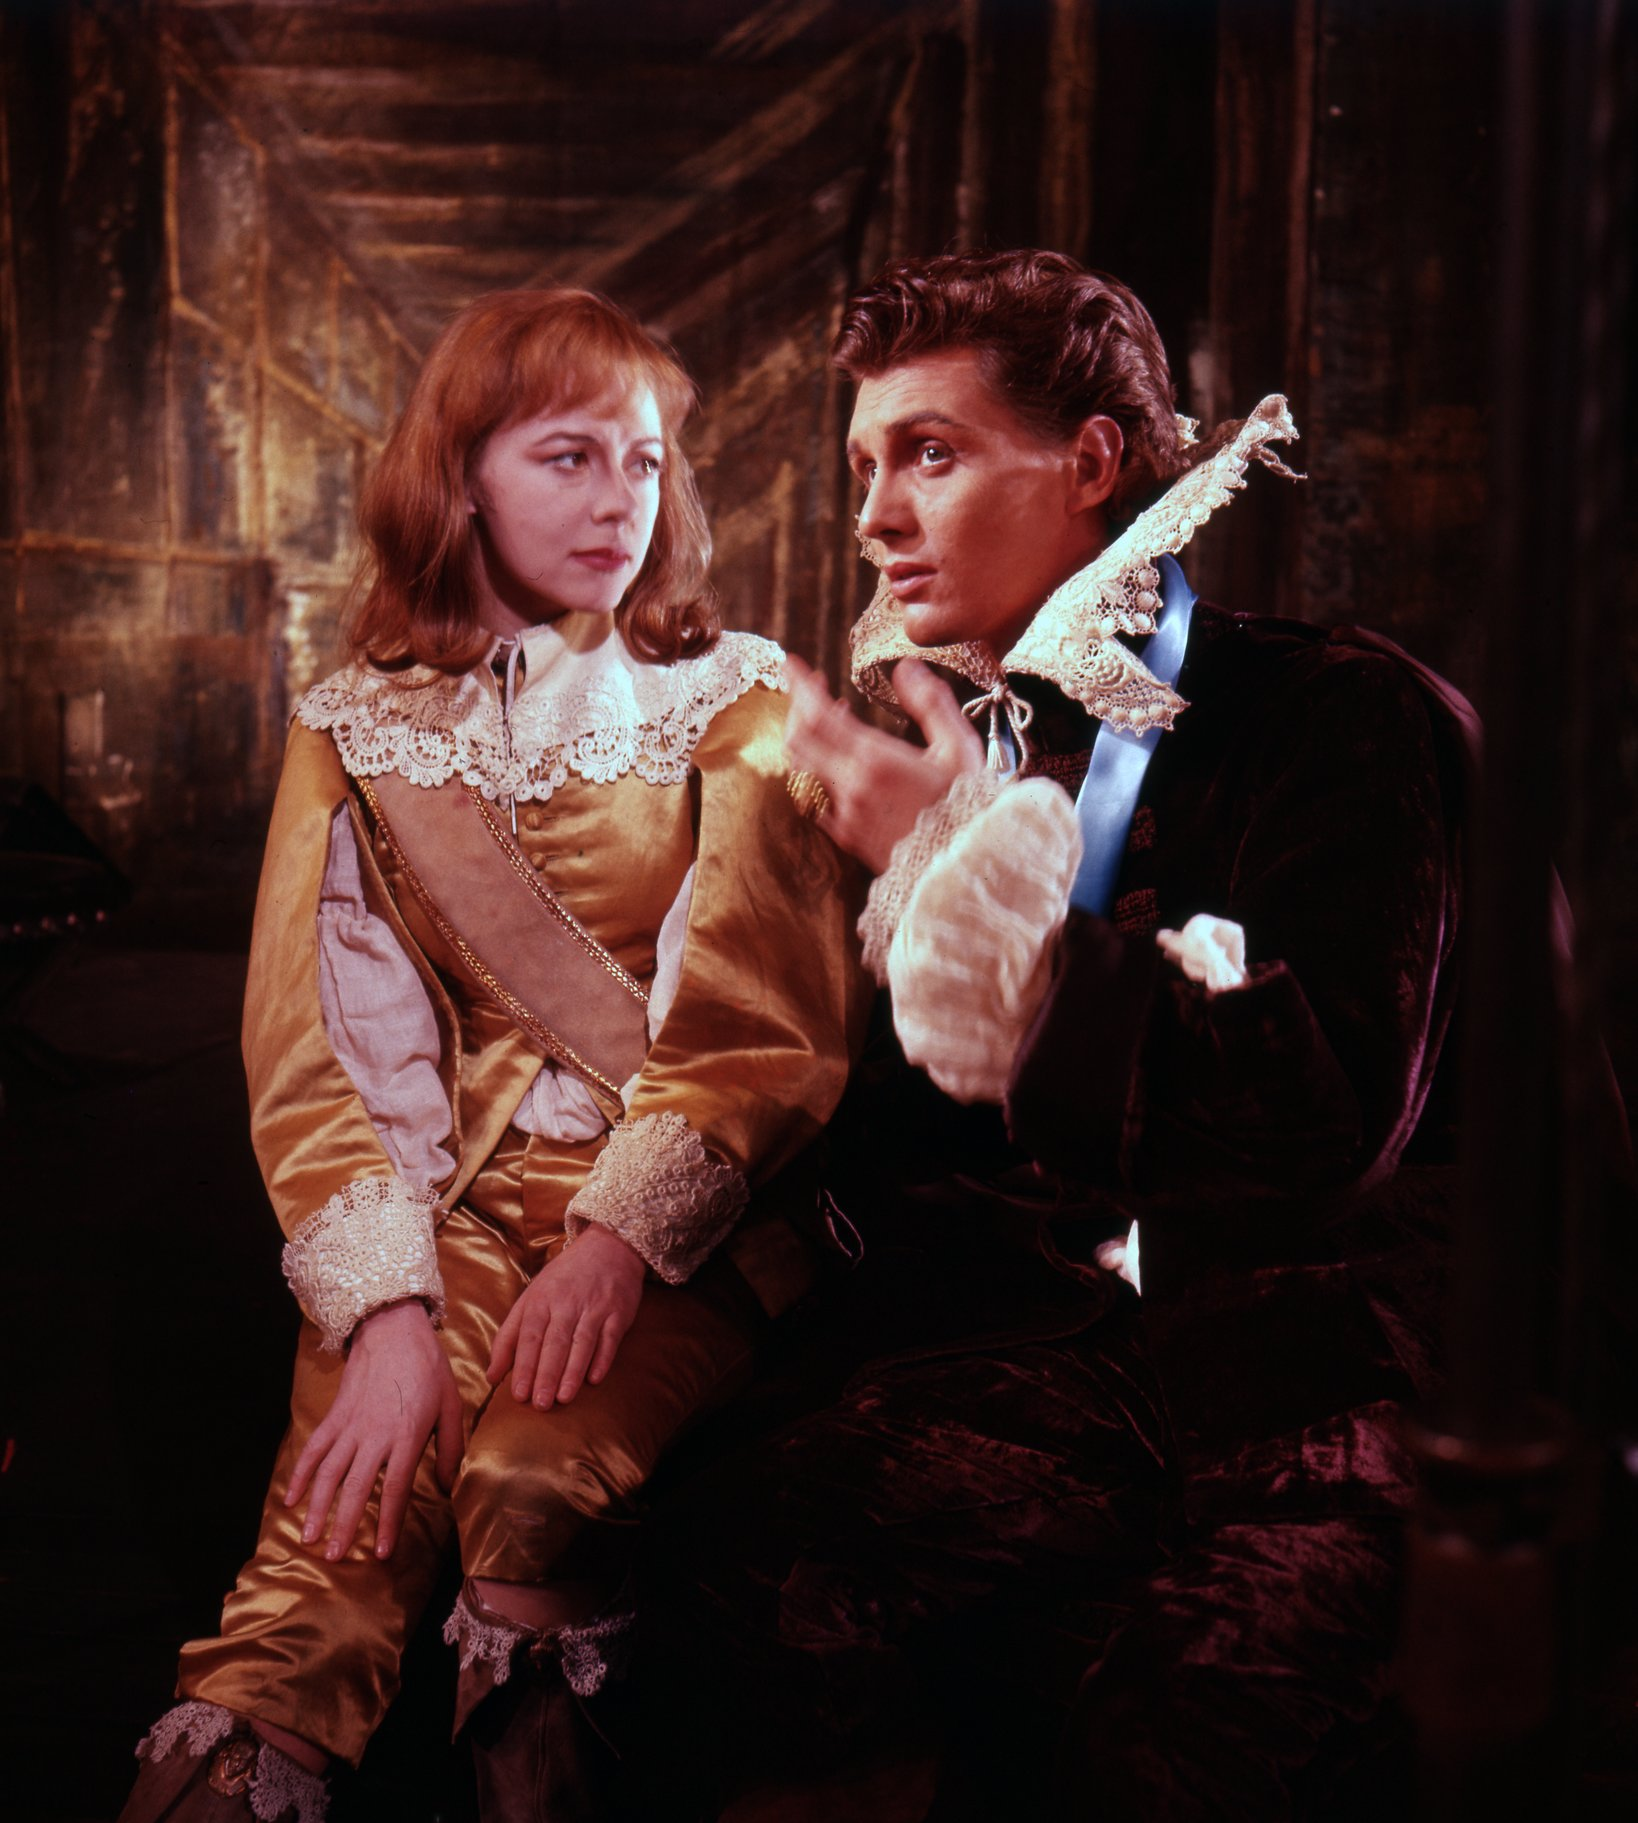 Viola sitting dressed as 'Cesario' in a yellow suit with white ruff and talking to Orsino who looks away into the distance in the 1958 production of Twelfth Night.